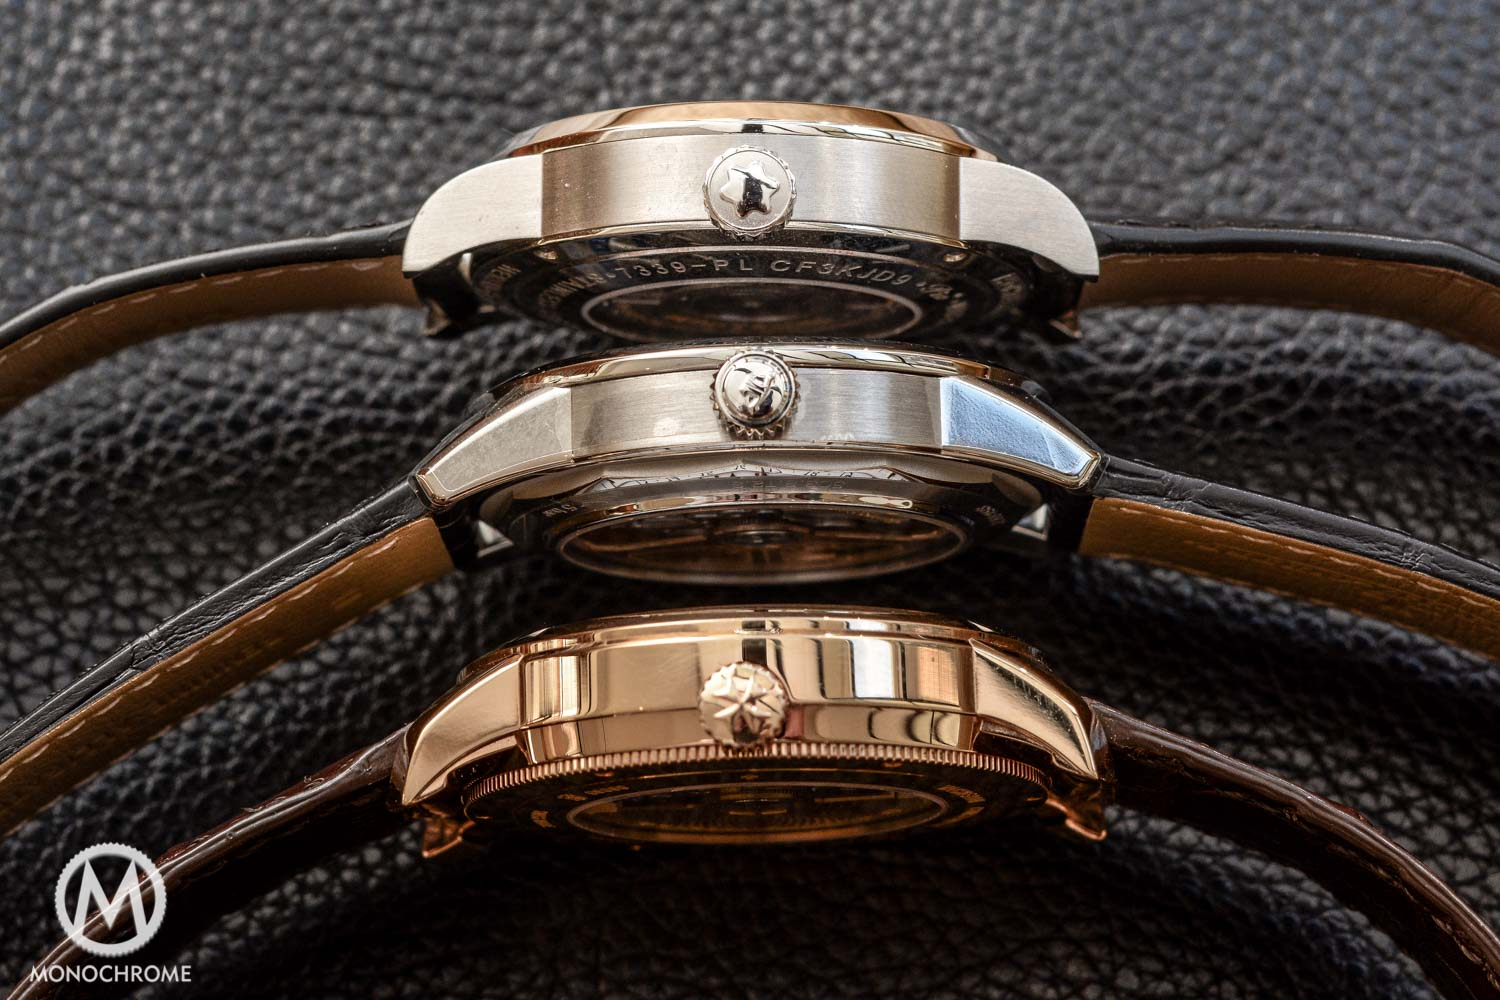 From top to bottom: Montblanc, Jaeger-LeCoultre and Vacheron Constantin